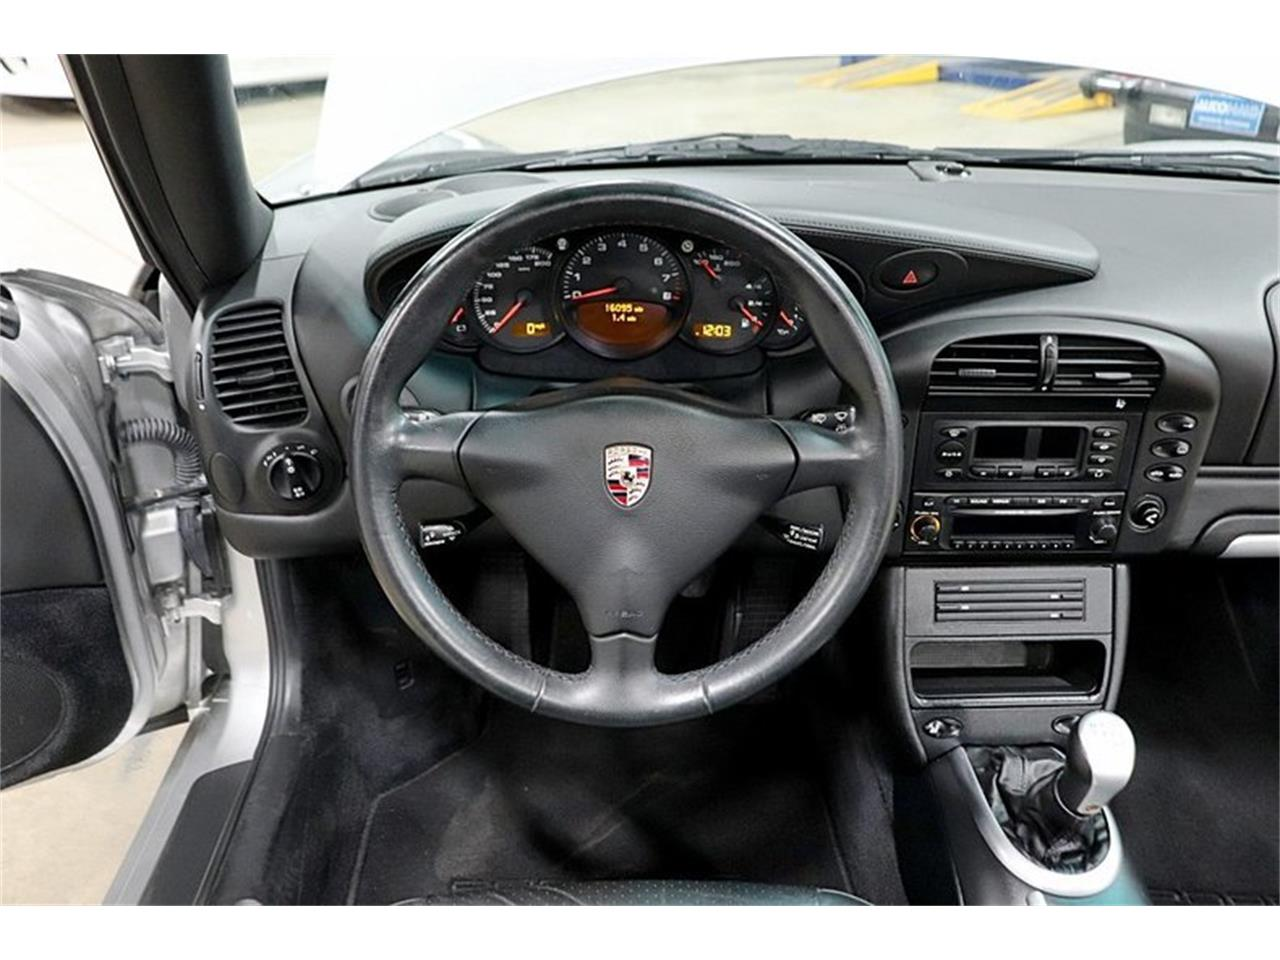 Large Picture of 2004 Porsche 911 located in Kentwood Michigan - $36,900.00 Offered by GR Auto Gallery - Q409